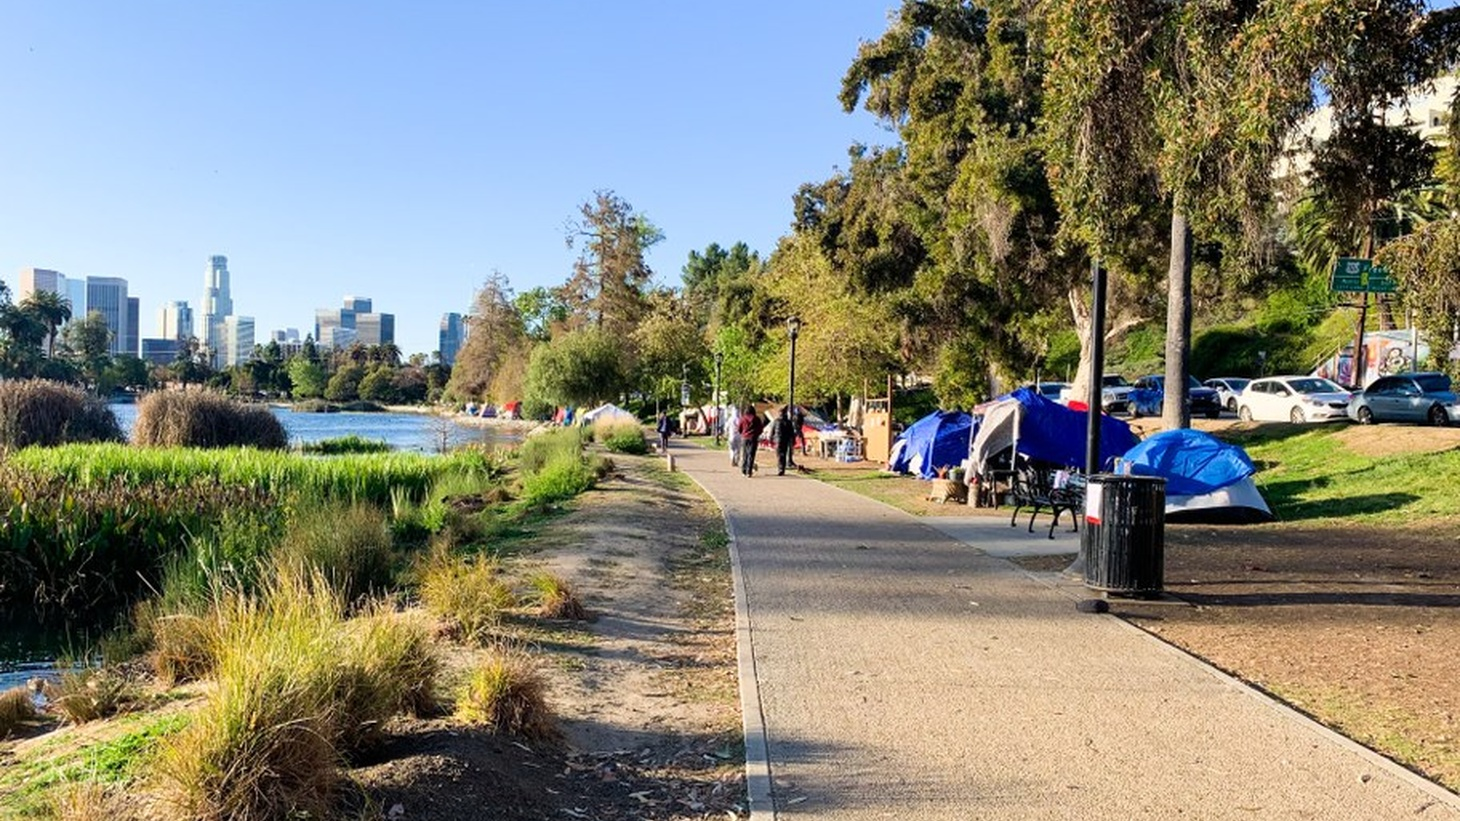 Echo Park Lake is lined with homeless tents, but the city wants to move out all these unhoused residents and shut down the area, March 24, 2021.